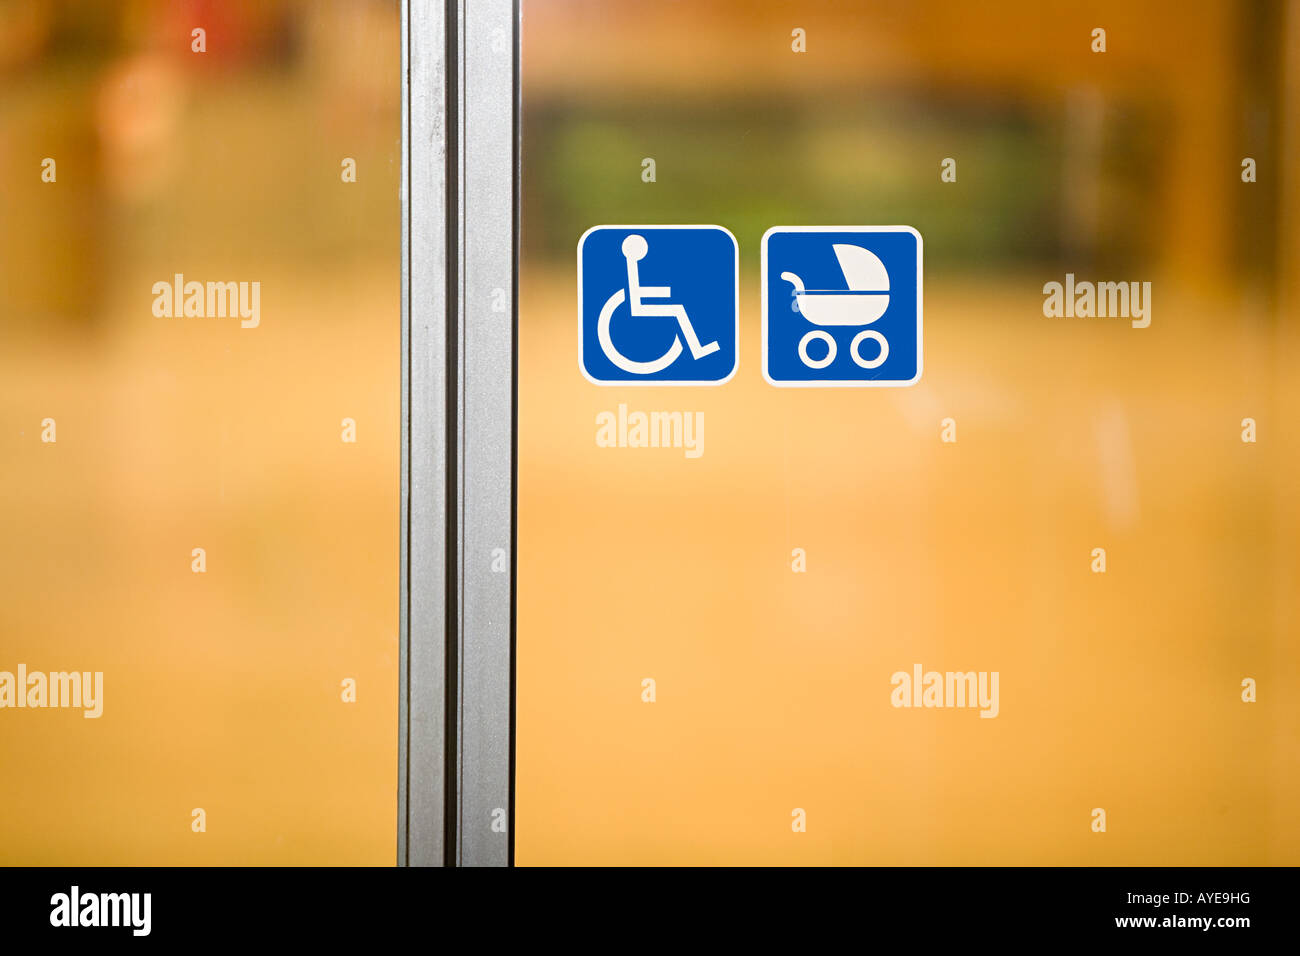 Signs on a door - Stock Image